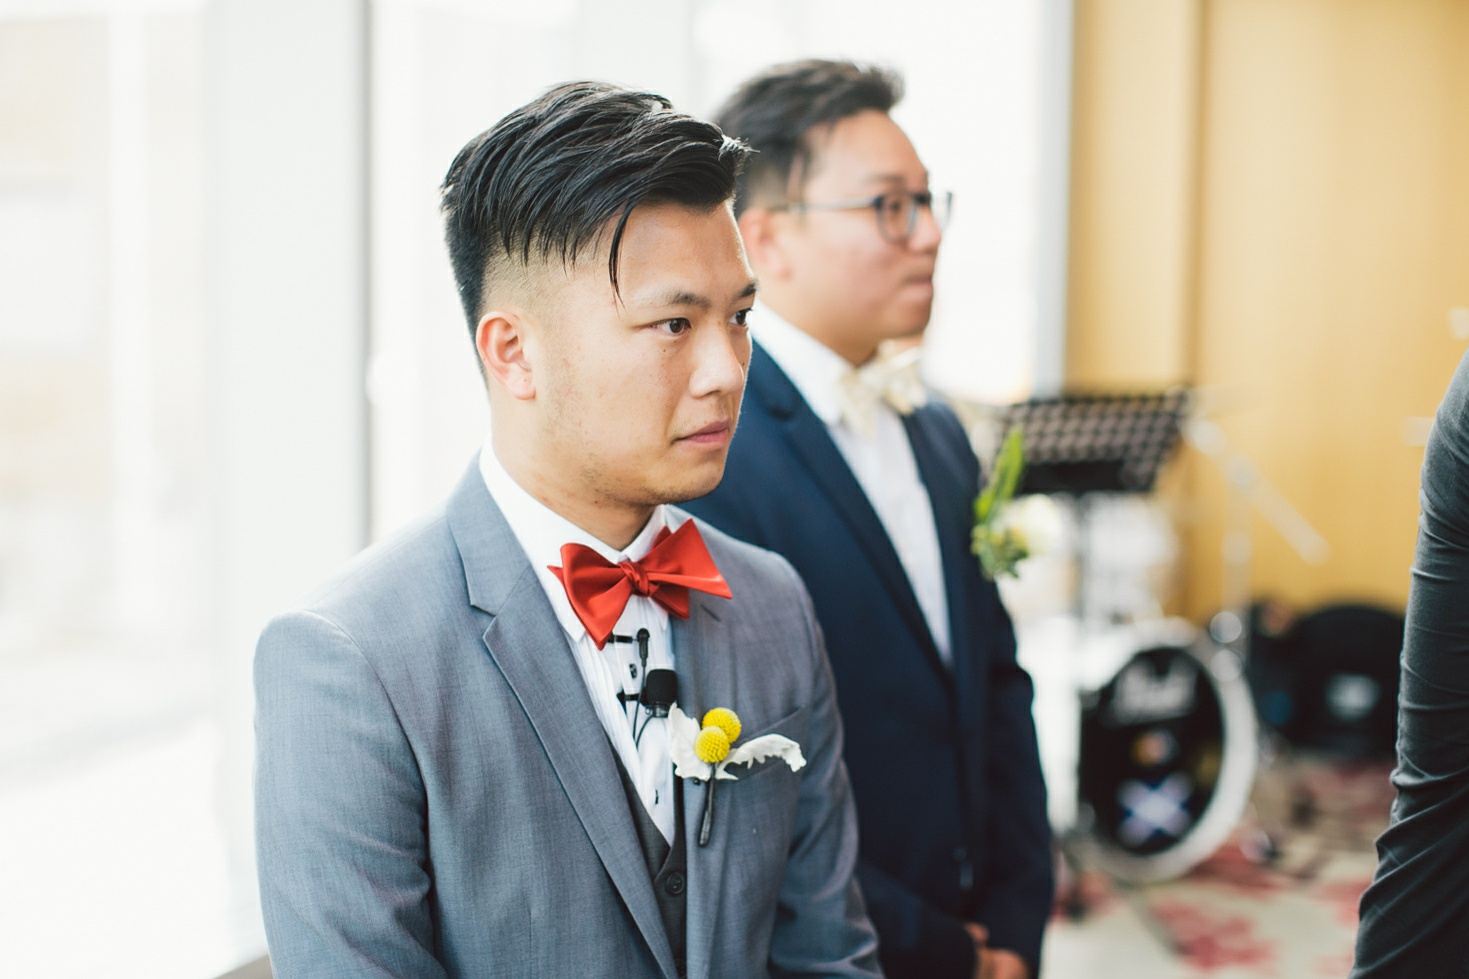 groom anticipating the bride